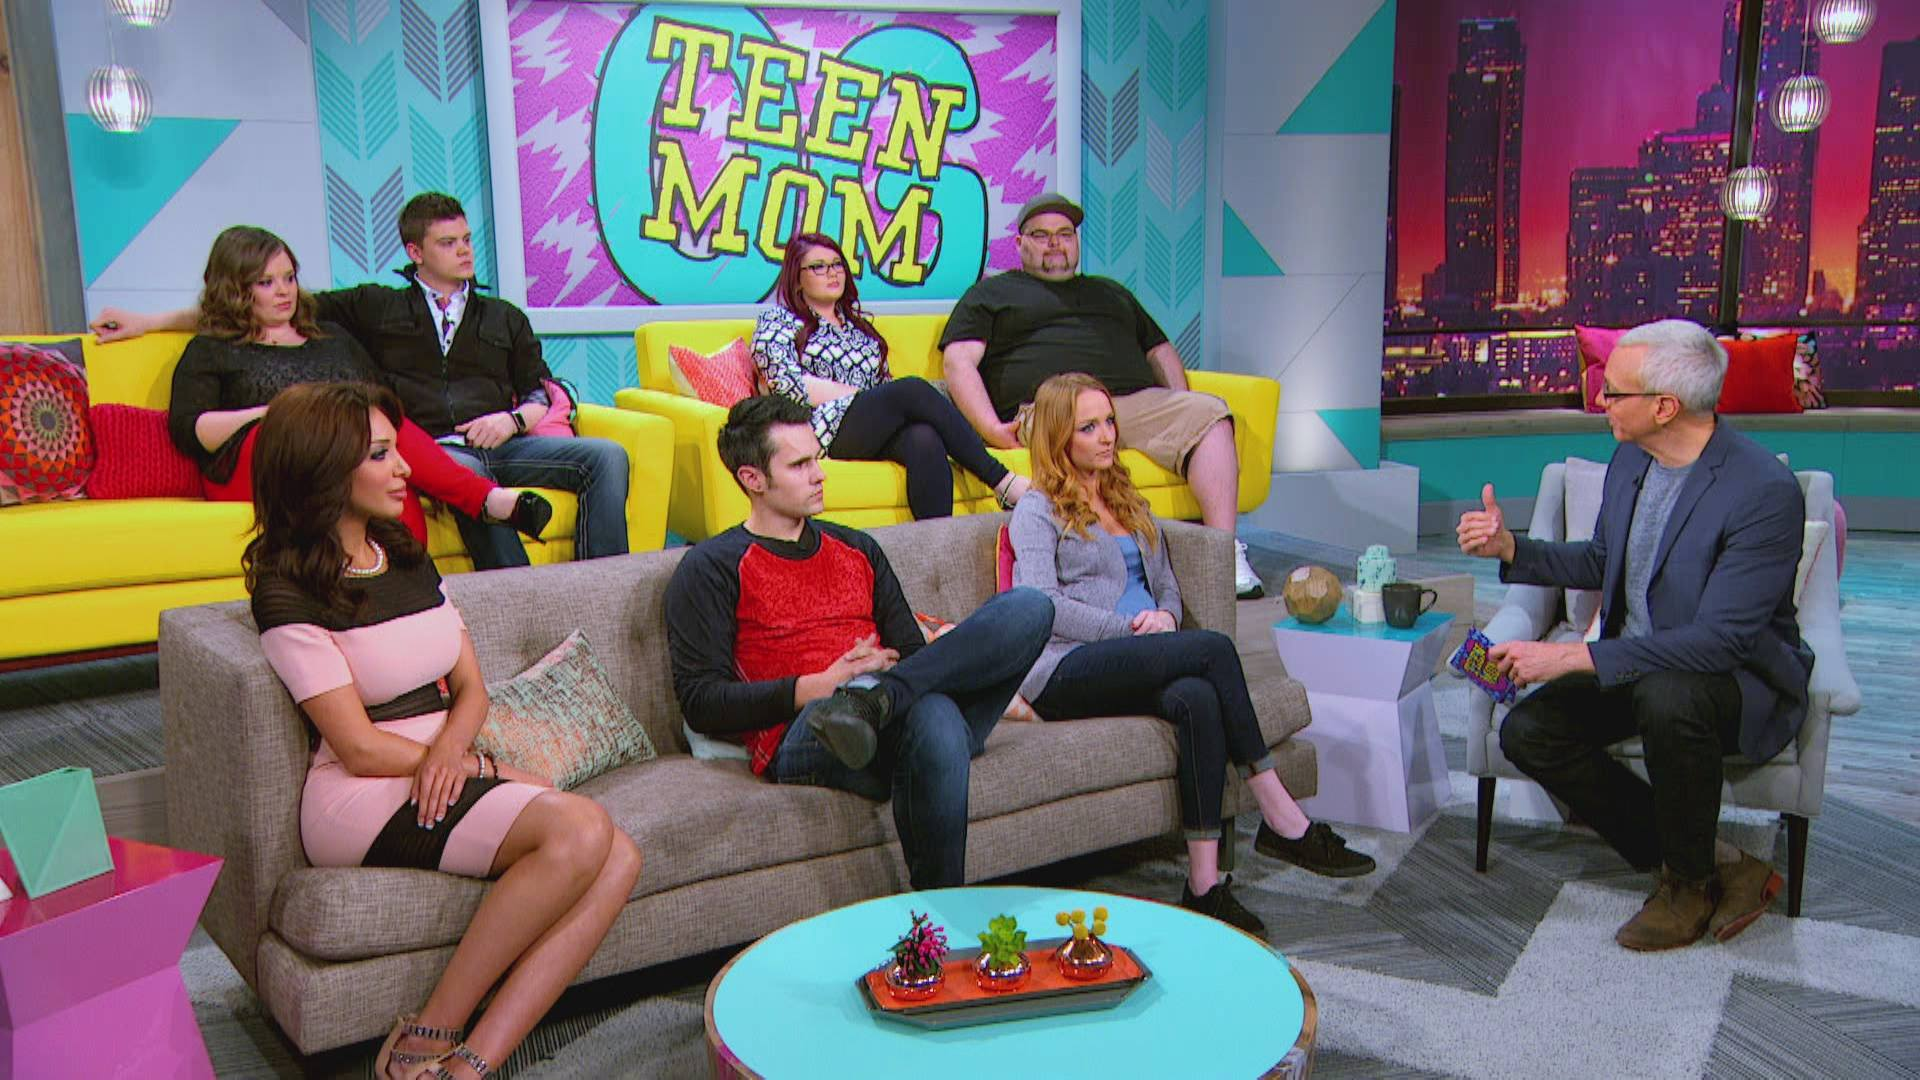 Teen mom reunion